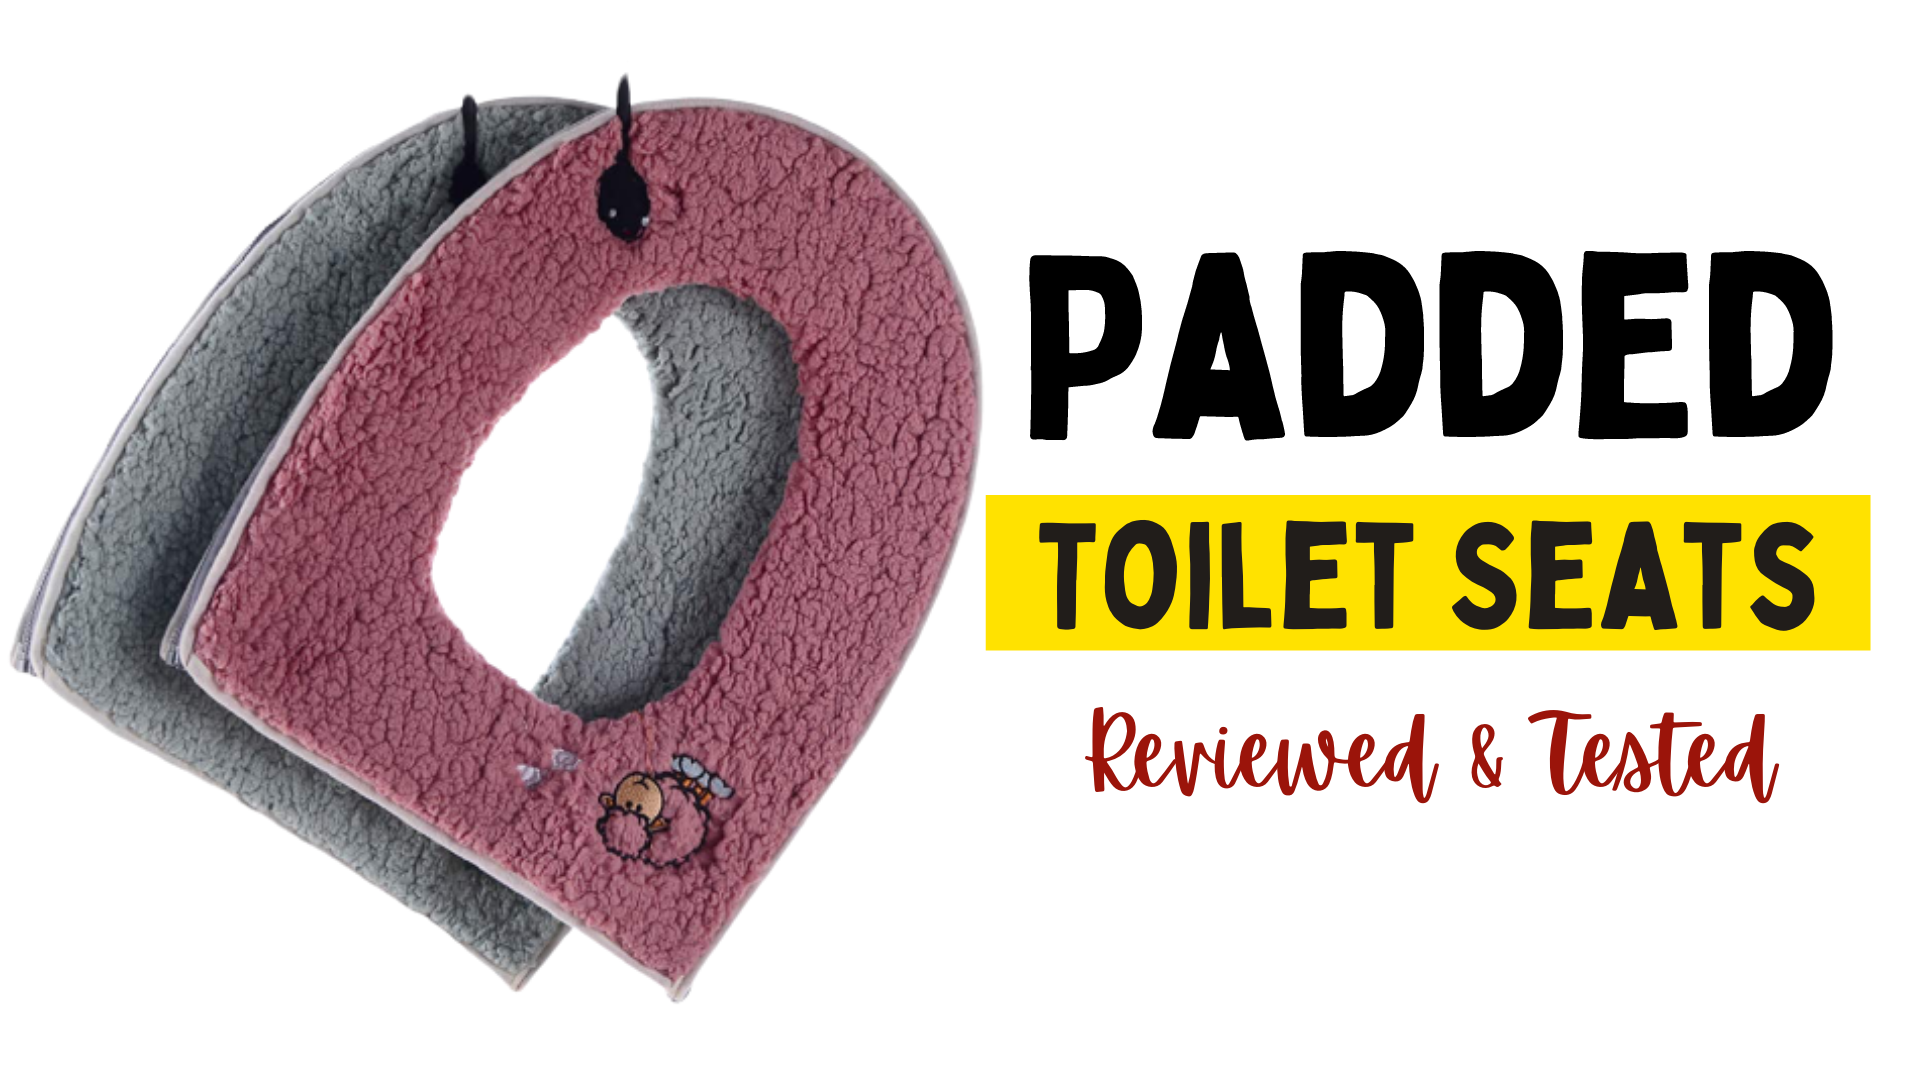 Padded Toilet Seats for Comfort